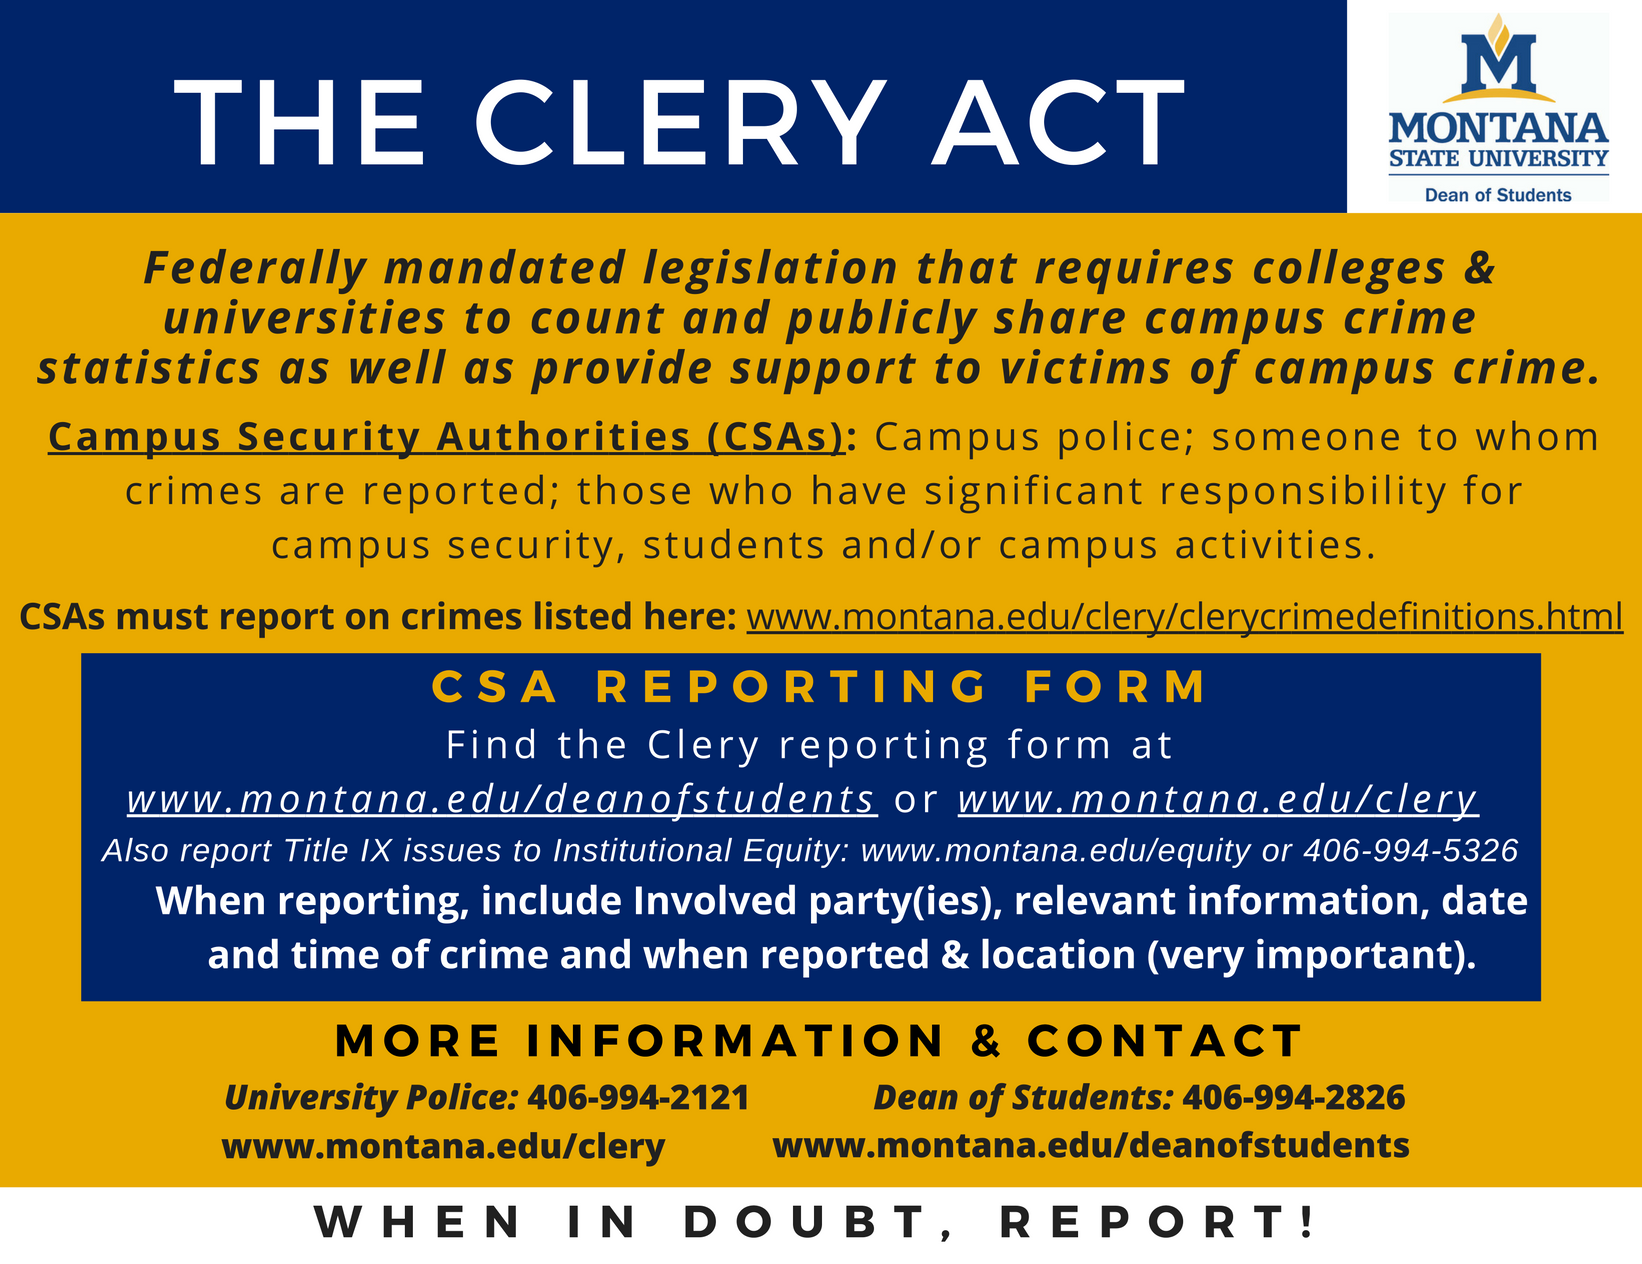 clery act magnet image